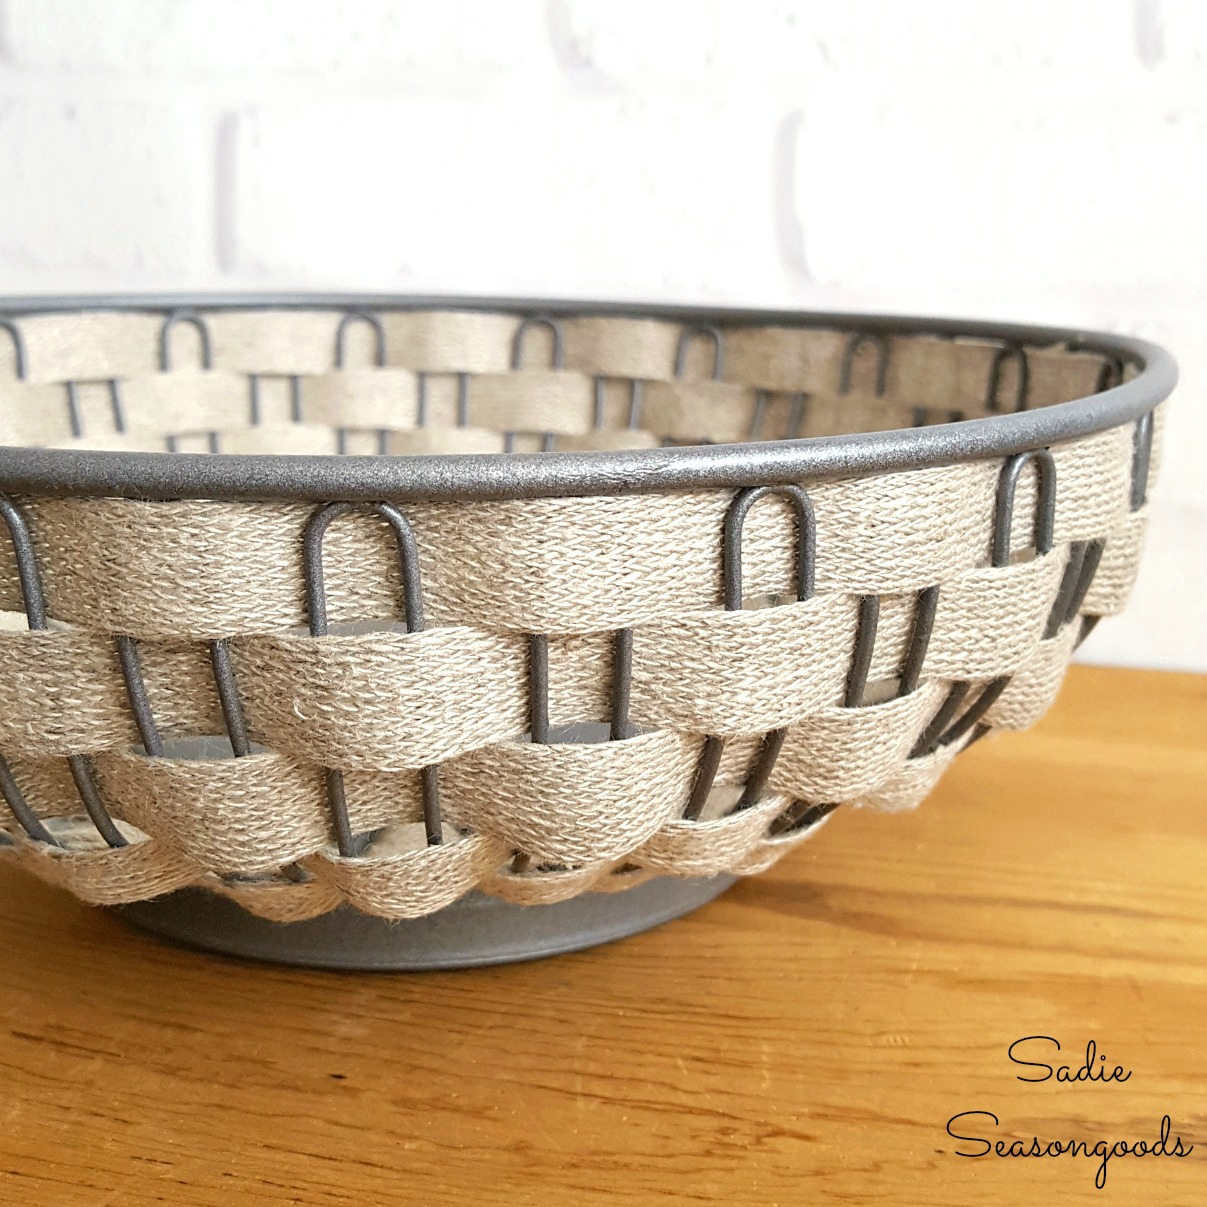 Creating Rustic Decor with a Metal Basket and Burlap Ribbon